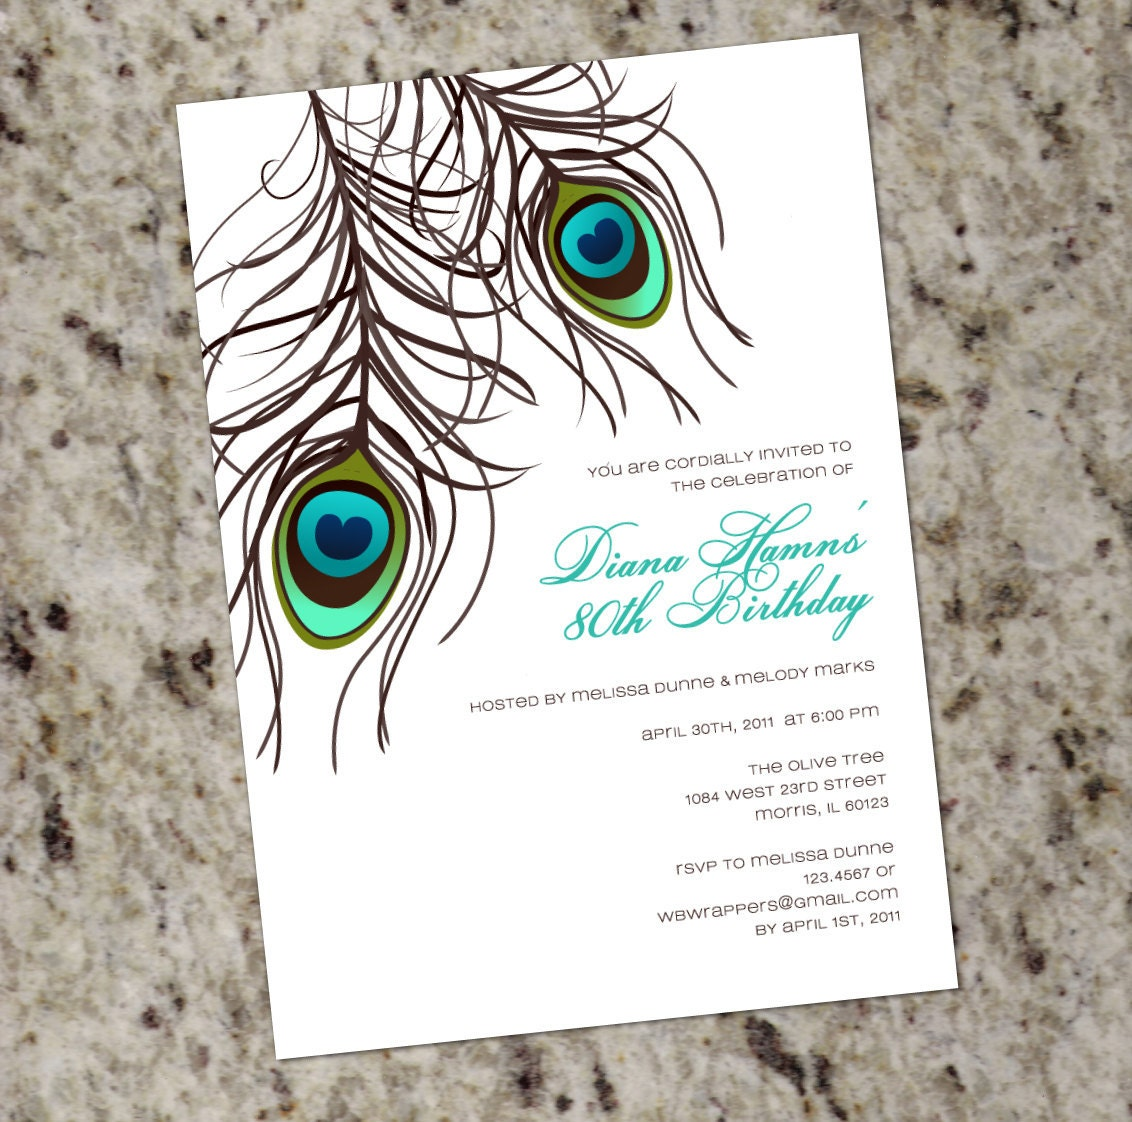 Peacock feather invitation template - photo#20